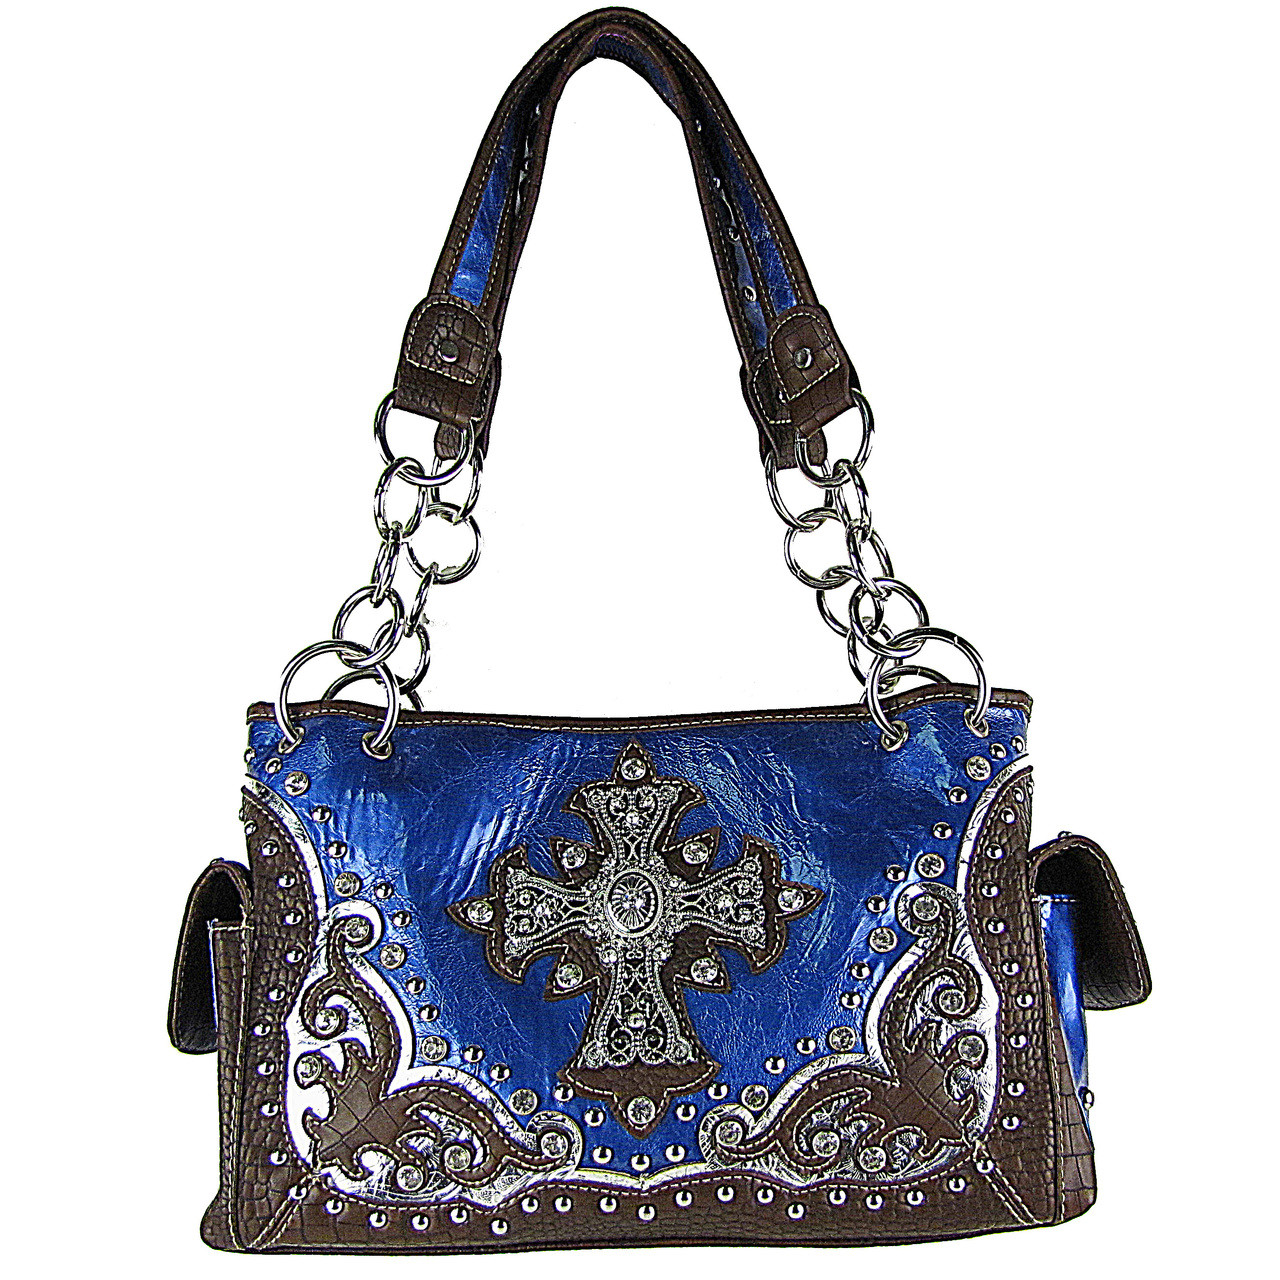 BLUE WESTERN STUDDED RHINESTONE CROSS SHOULDER HANDBAG HB1-CHF0032BLU